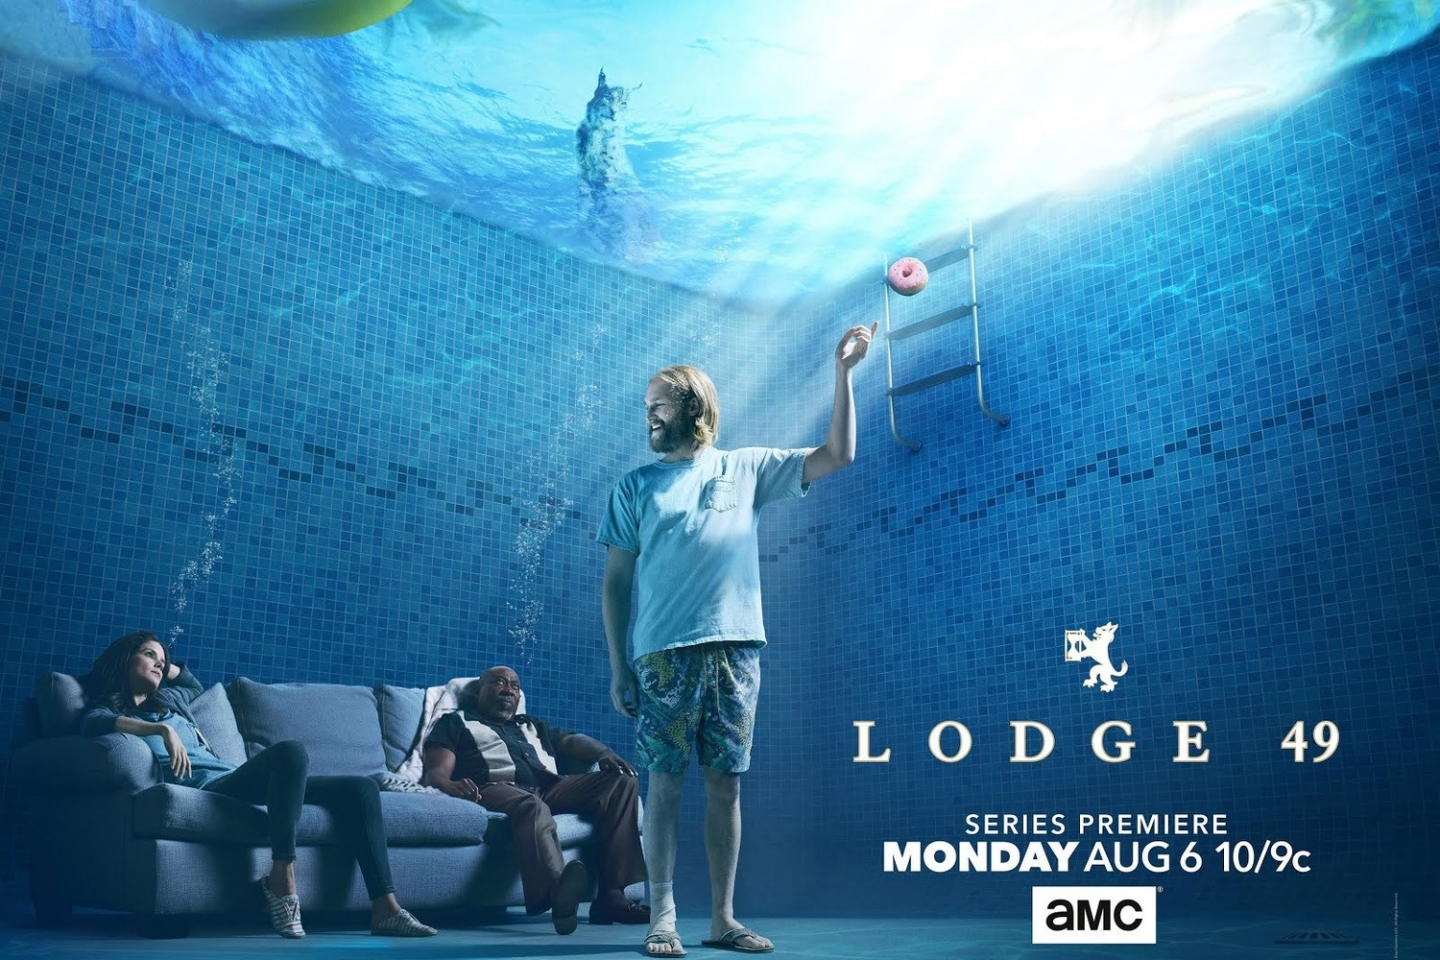 LODGE 49 – AMC